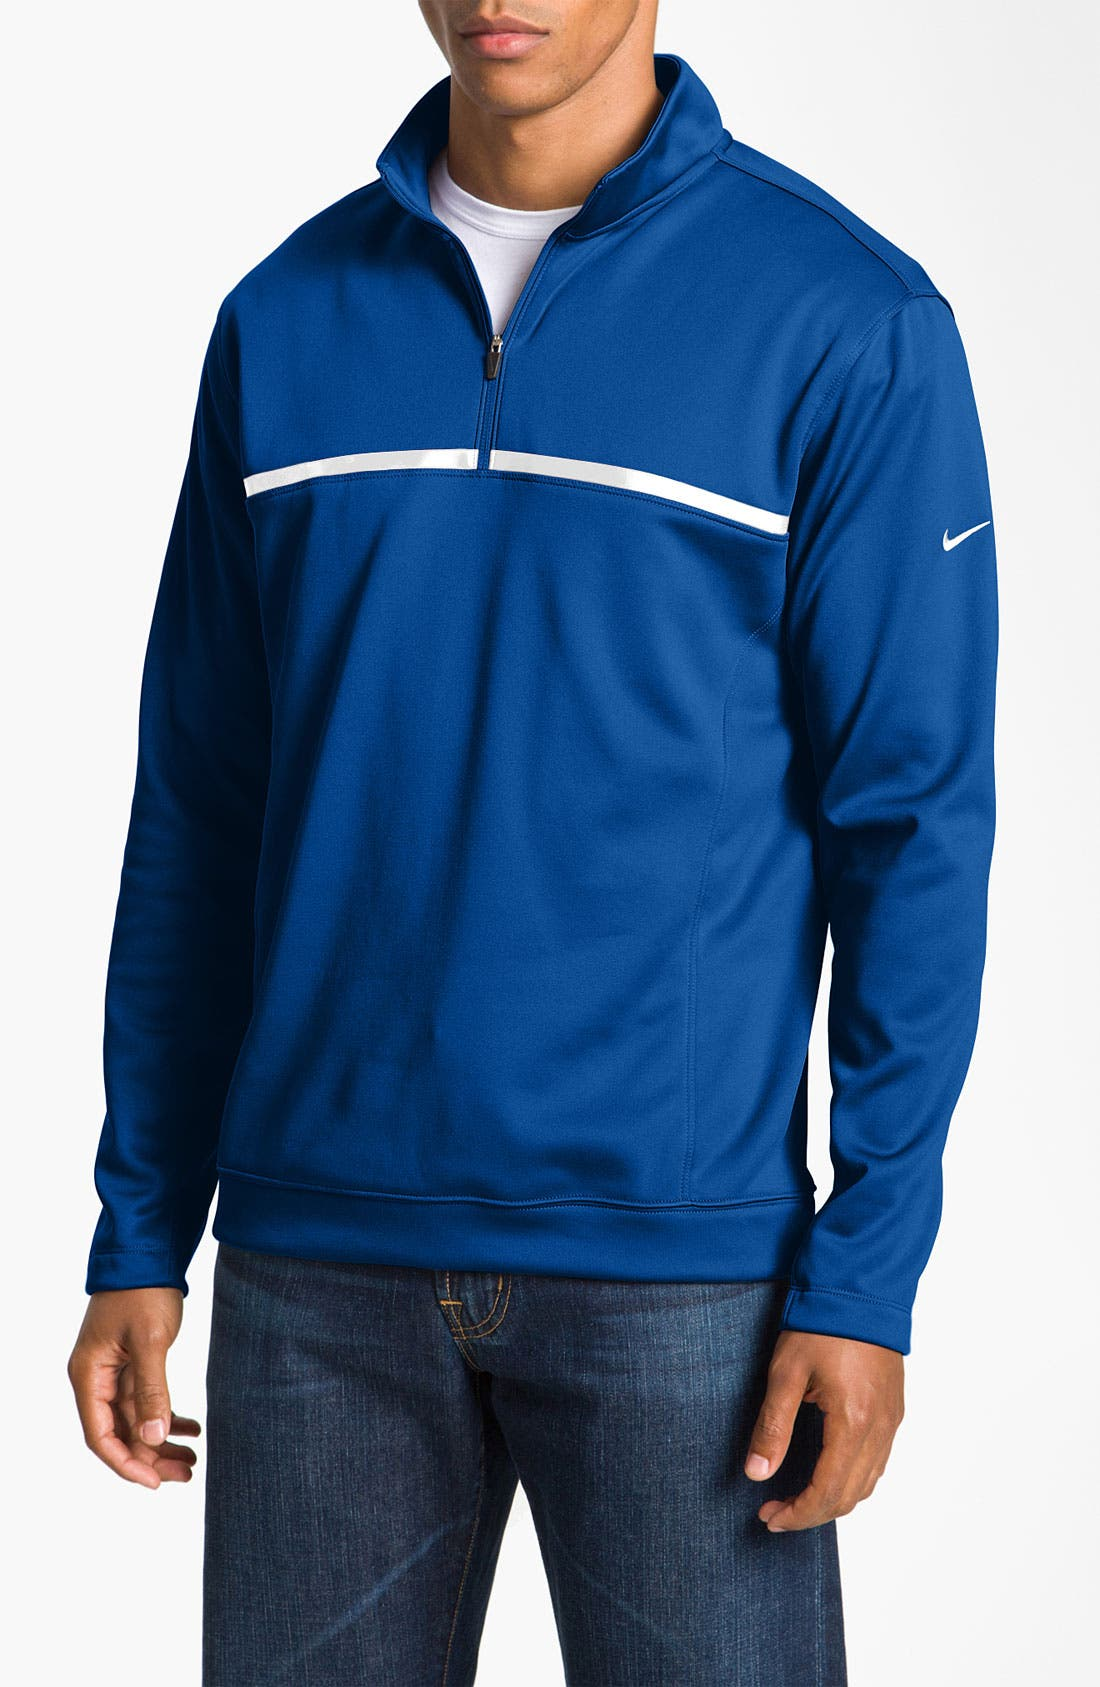 Main Image - Nike Golf 'Therma-FIT' Quarter Zip Pullover